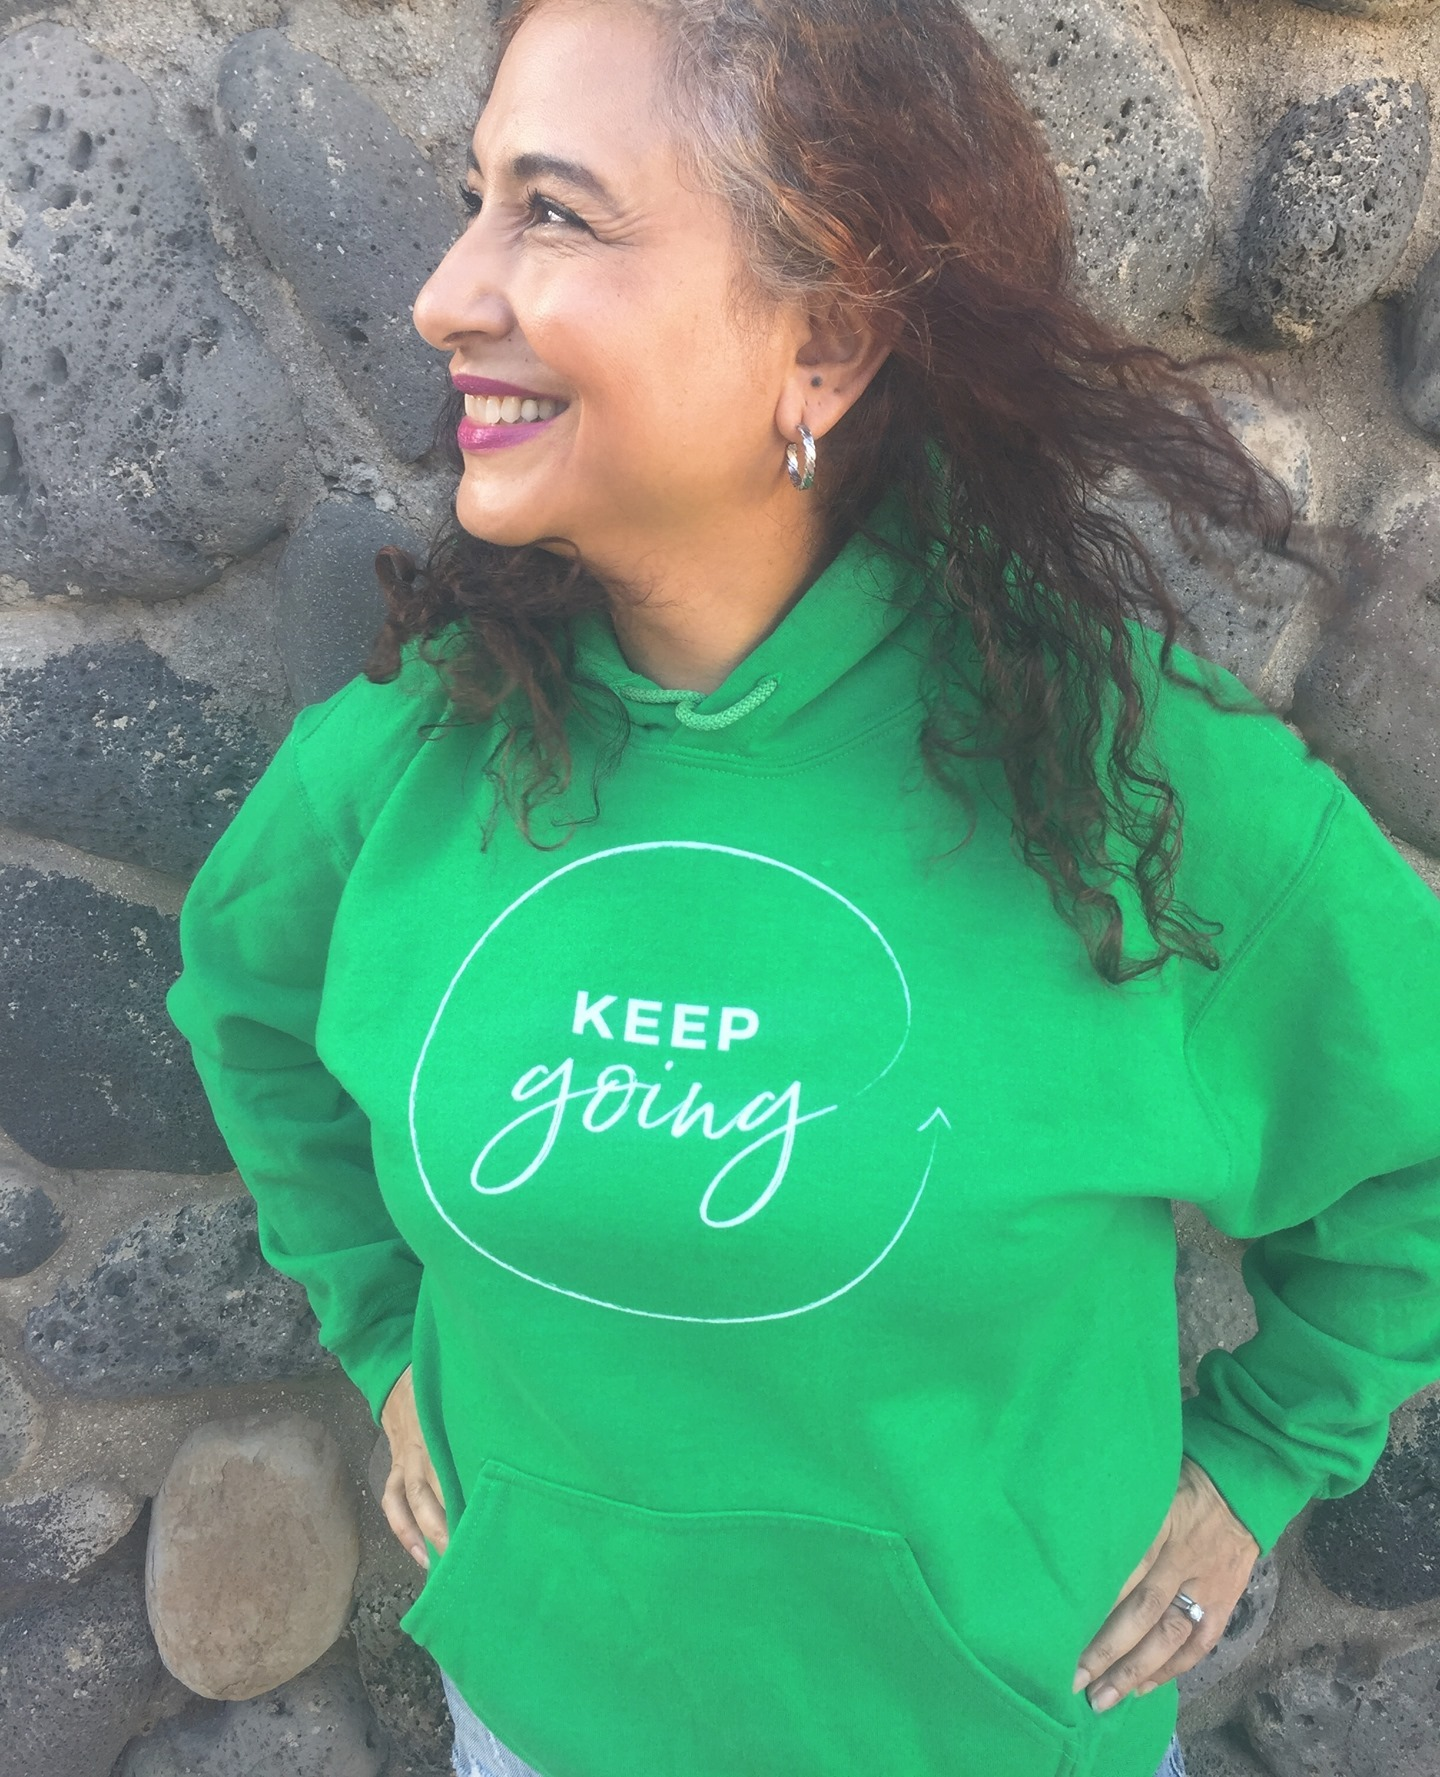 Keep going, even when you don't think you can.Hoodies come in Irish Green (pictured) and Indigo Blue, and are a perfect way to comfort your soul this chaotic year. 5% of net proceeds goes to @mentalhealthamerica. Link to shop is in my bio.#ichoosebeauty #hoodieseason #hoodiestyle #keepgoingforward #keepgoingstrong #keepgoingon #wearabletherapy #wearables #healingtools #healingtrauma #athleisurewear #athleisurestyle #athleisurelook #coronaviruspandemic #lifeinthetimeofcornona #covid2020 #mentalhealthisimportant #mentalhealthadvice #mentalhealthjourney #mentalwellness #mentaltraining #mentalhealthsupport